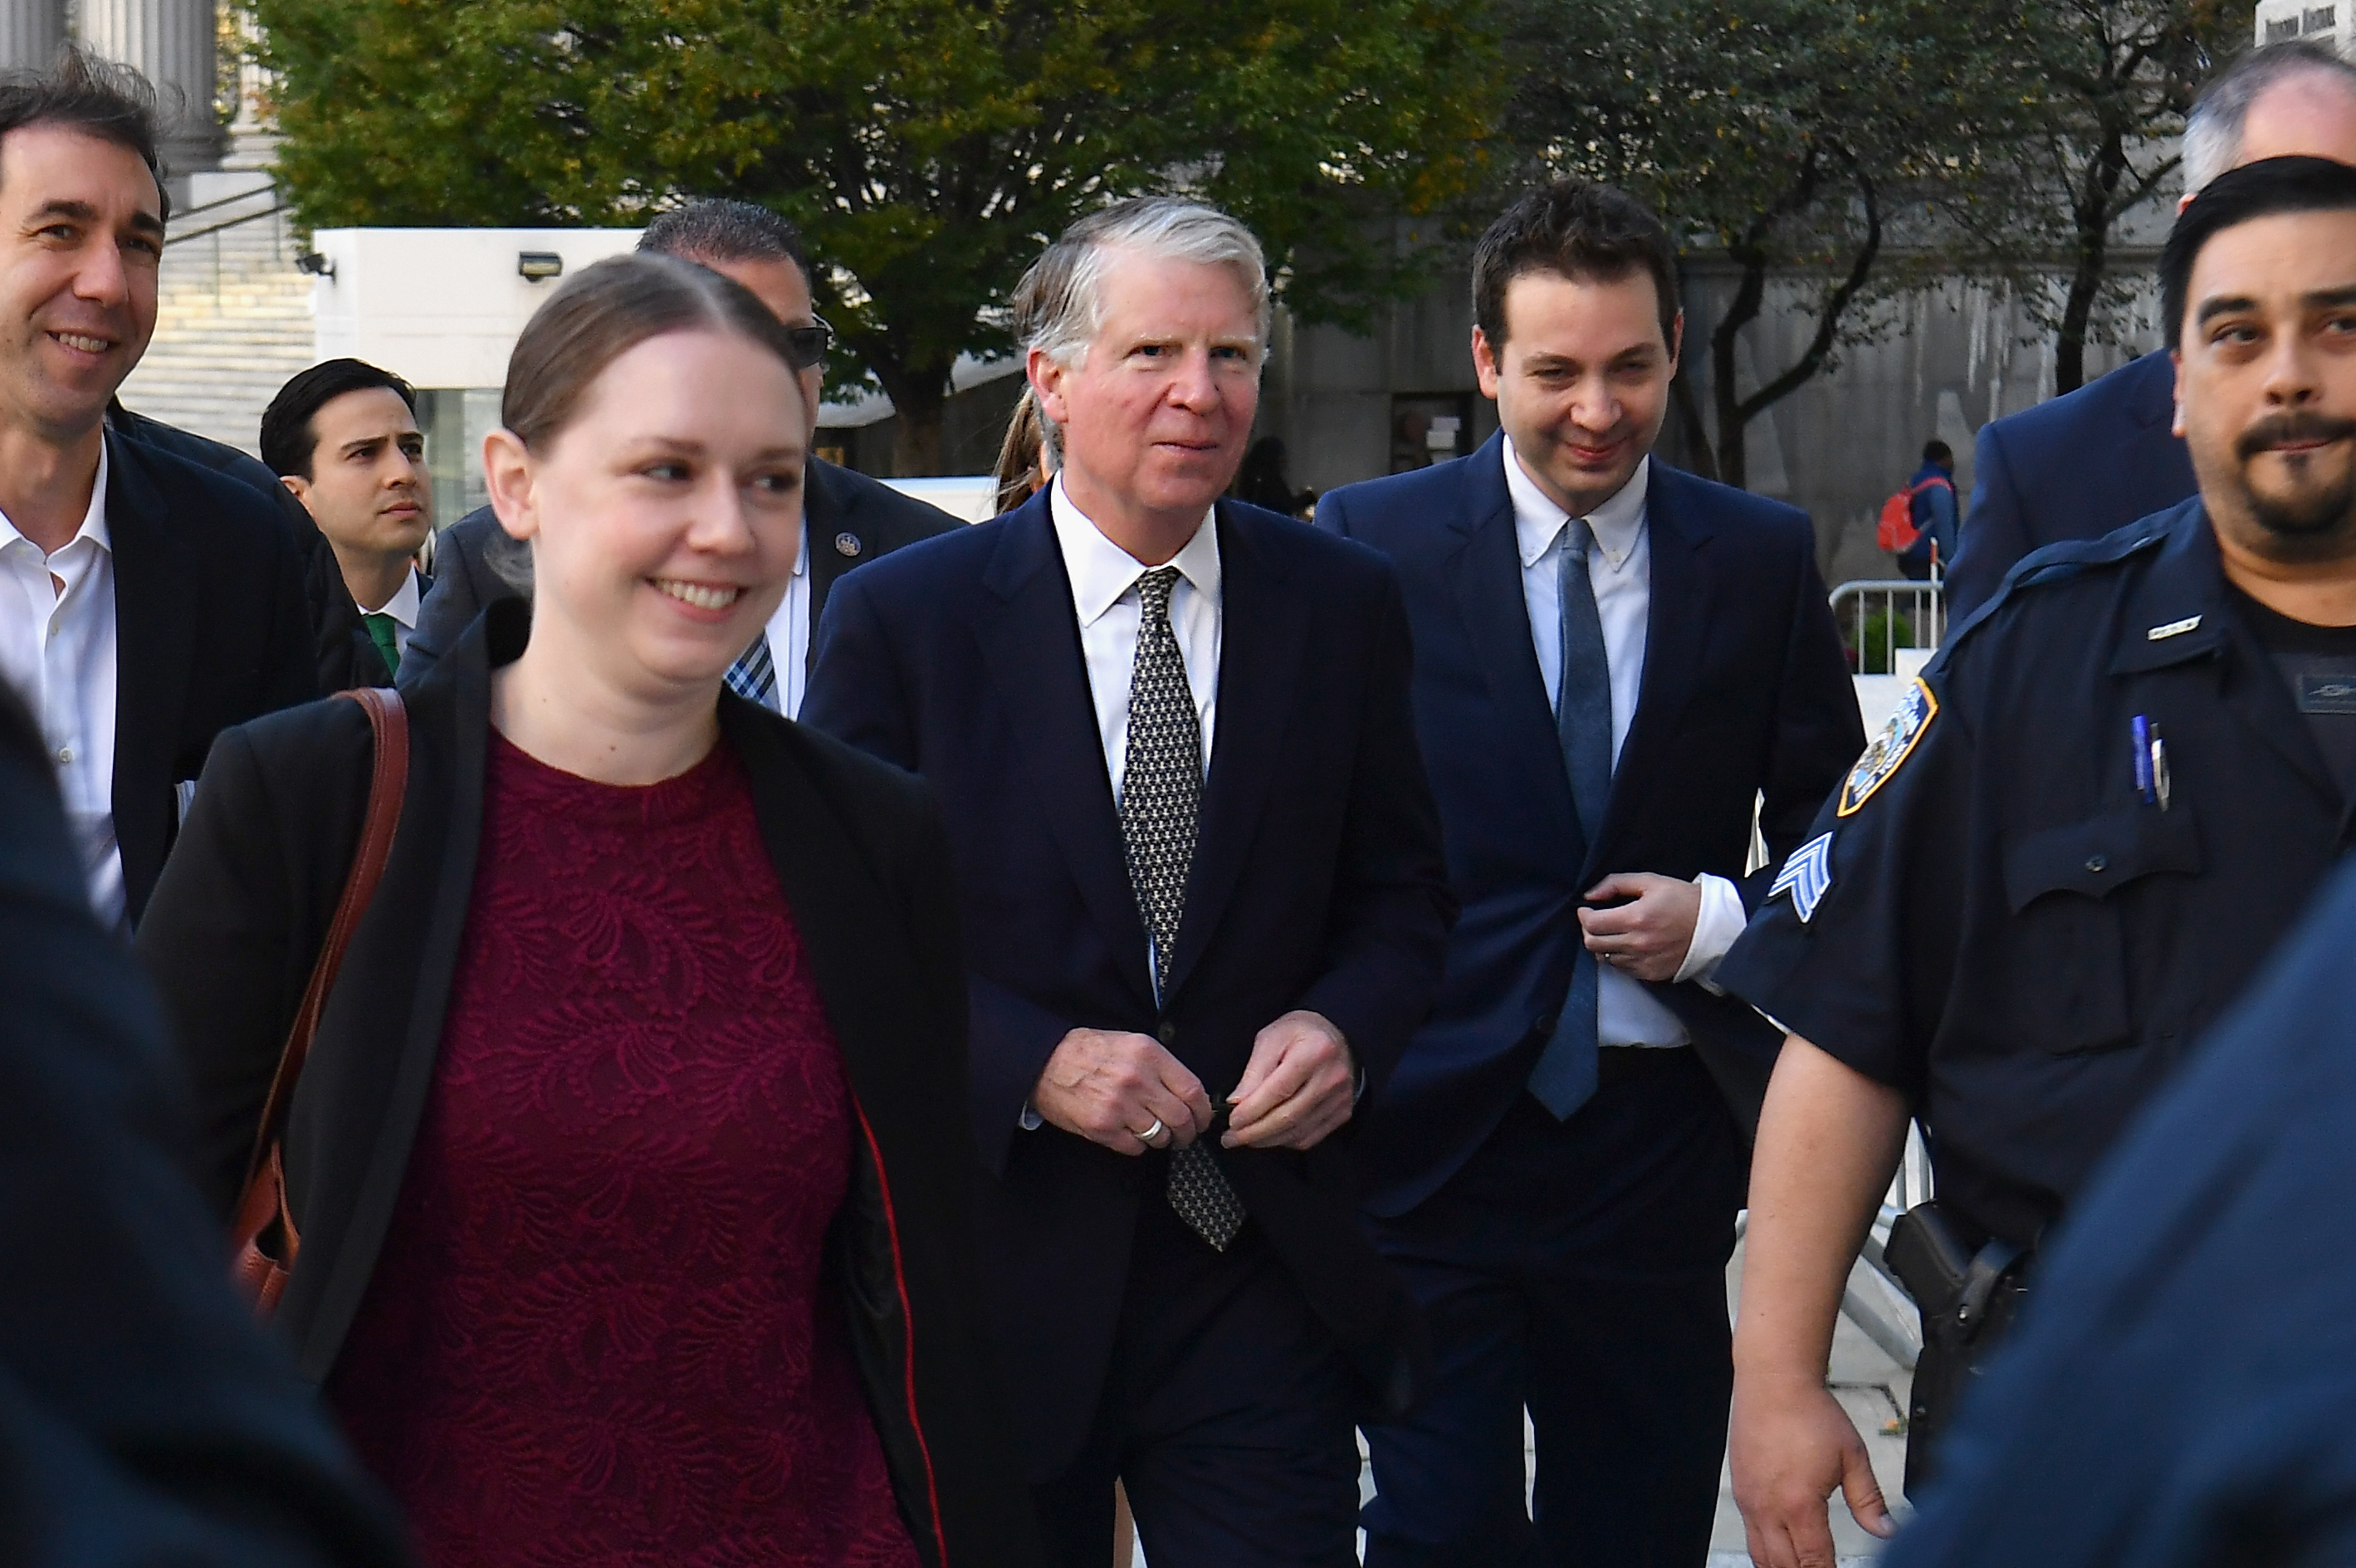 Manhattan District Attorney Cyrus Vance Jr. arrives for a federal court hearing in New York City on October 23, 2019. (Angela Weiss/AFP/Getty Images)